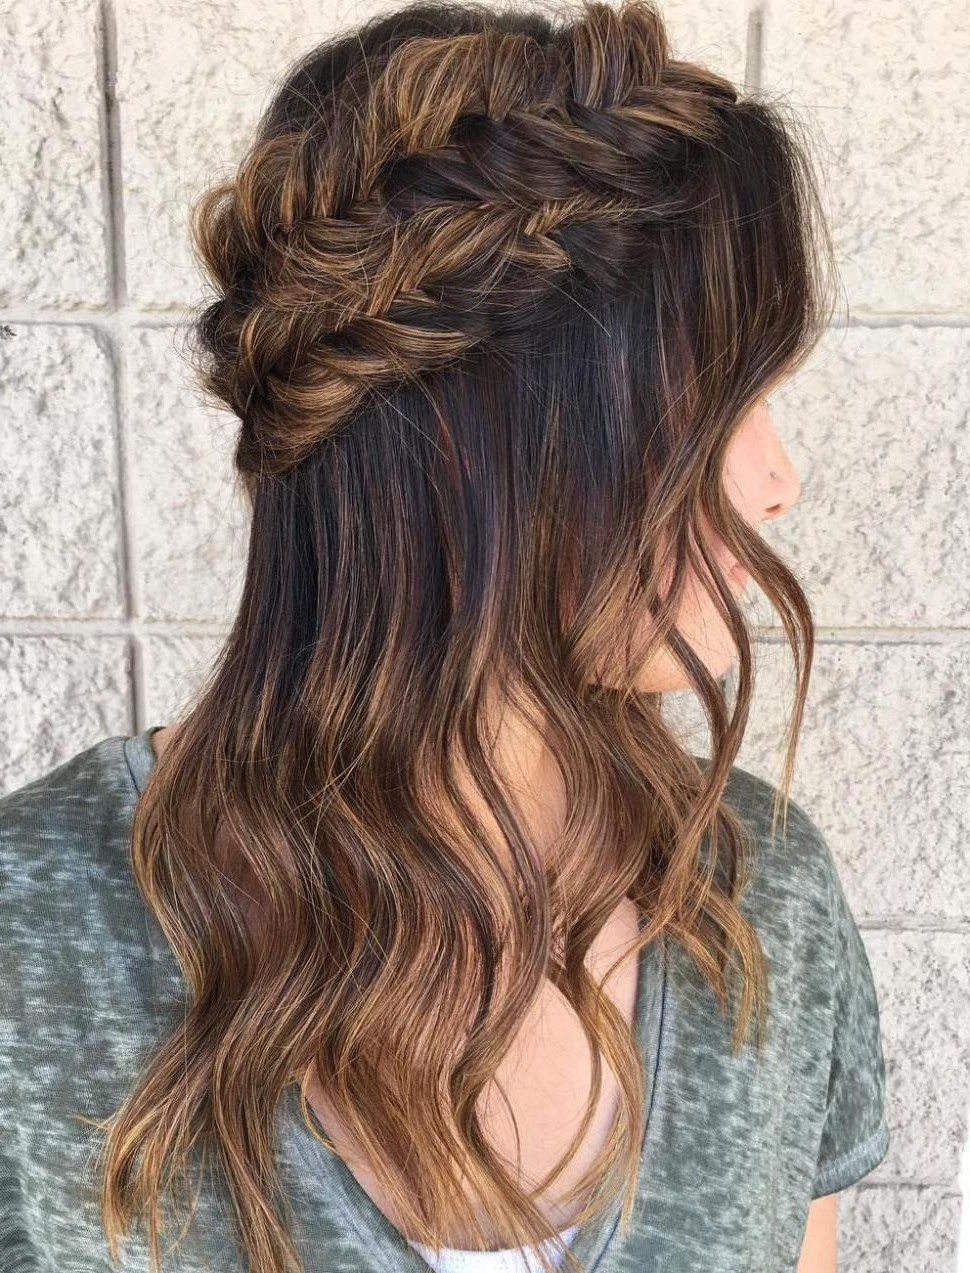 Braided (View 3 of 20)